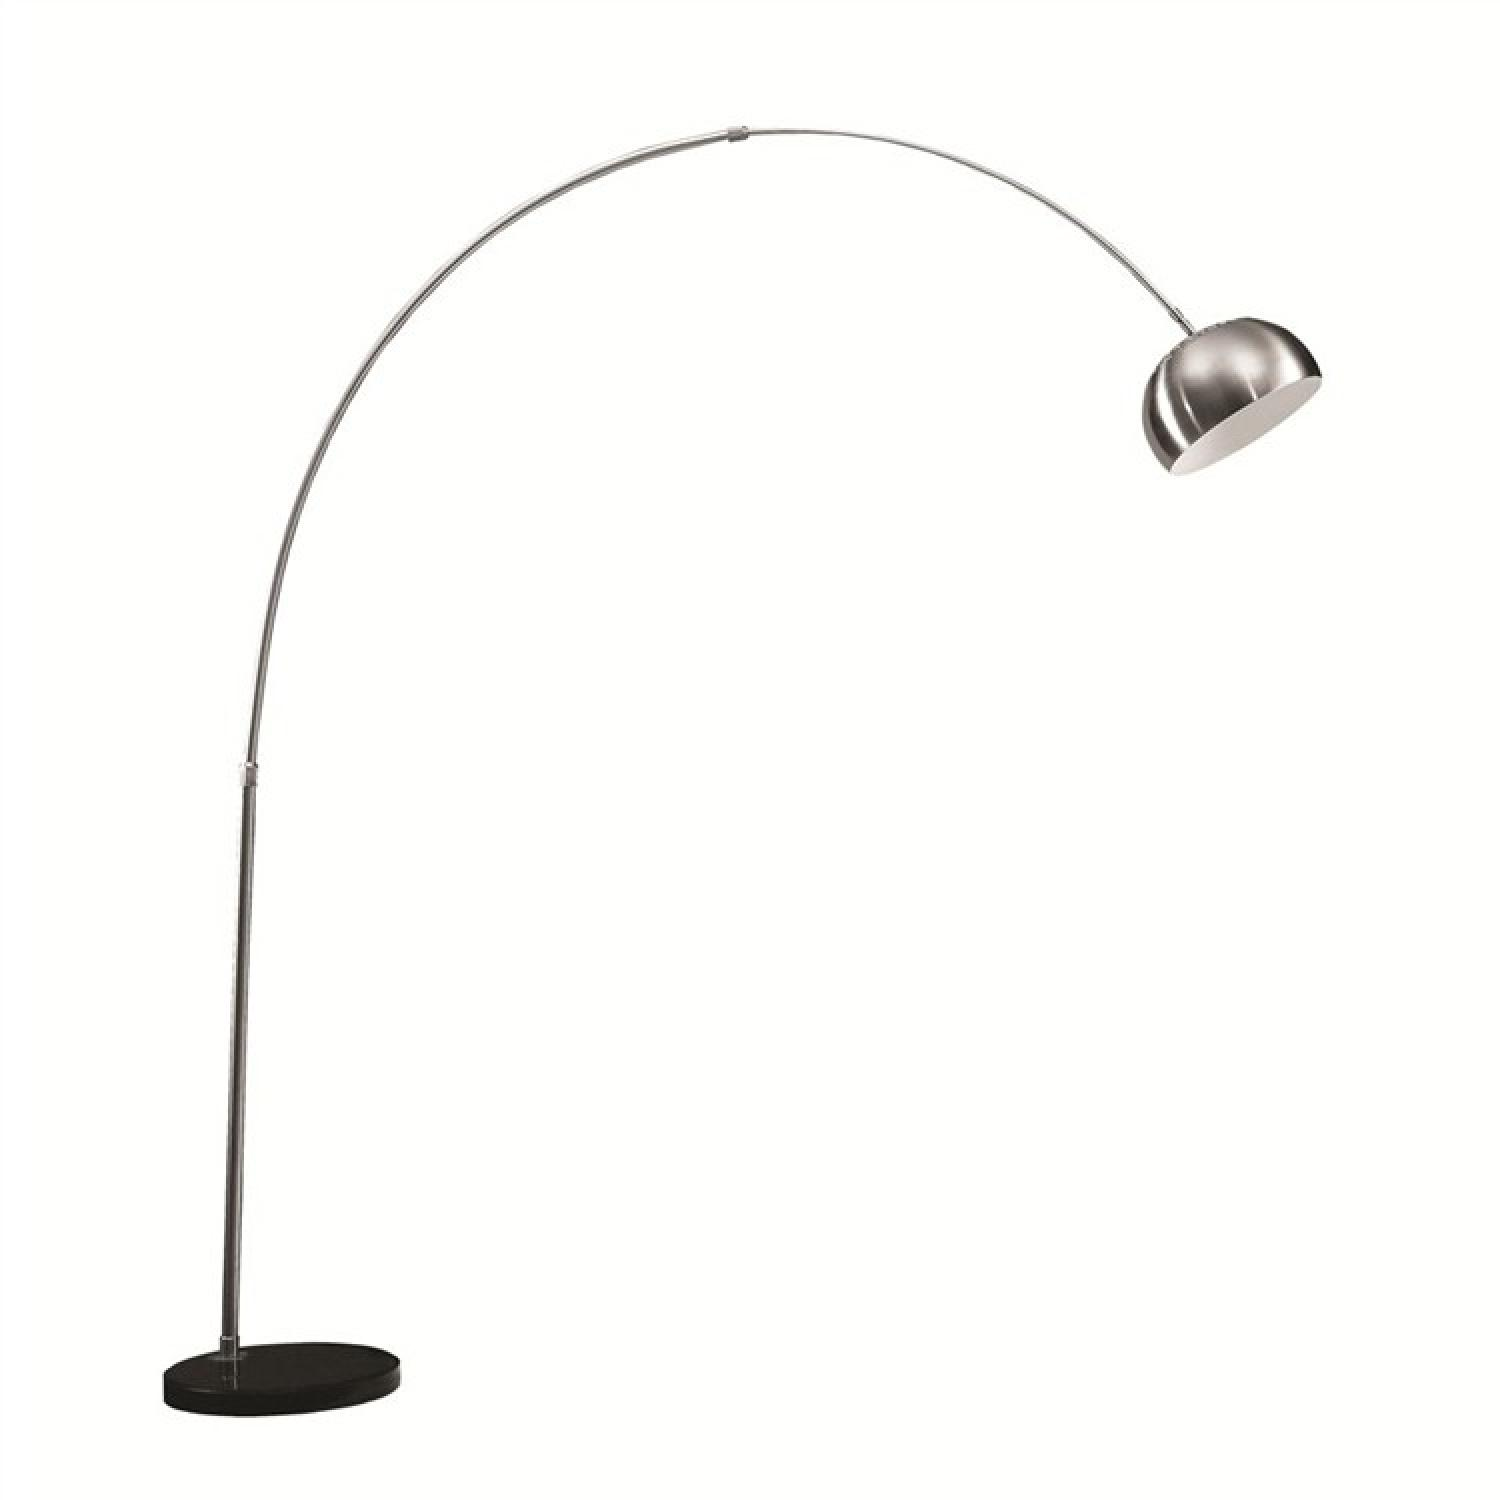 Modern Arch Lamp w/ Polished Stainless Steel Body & Round Bl - image-0